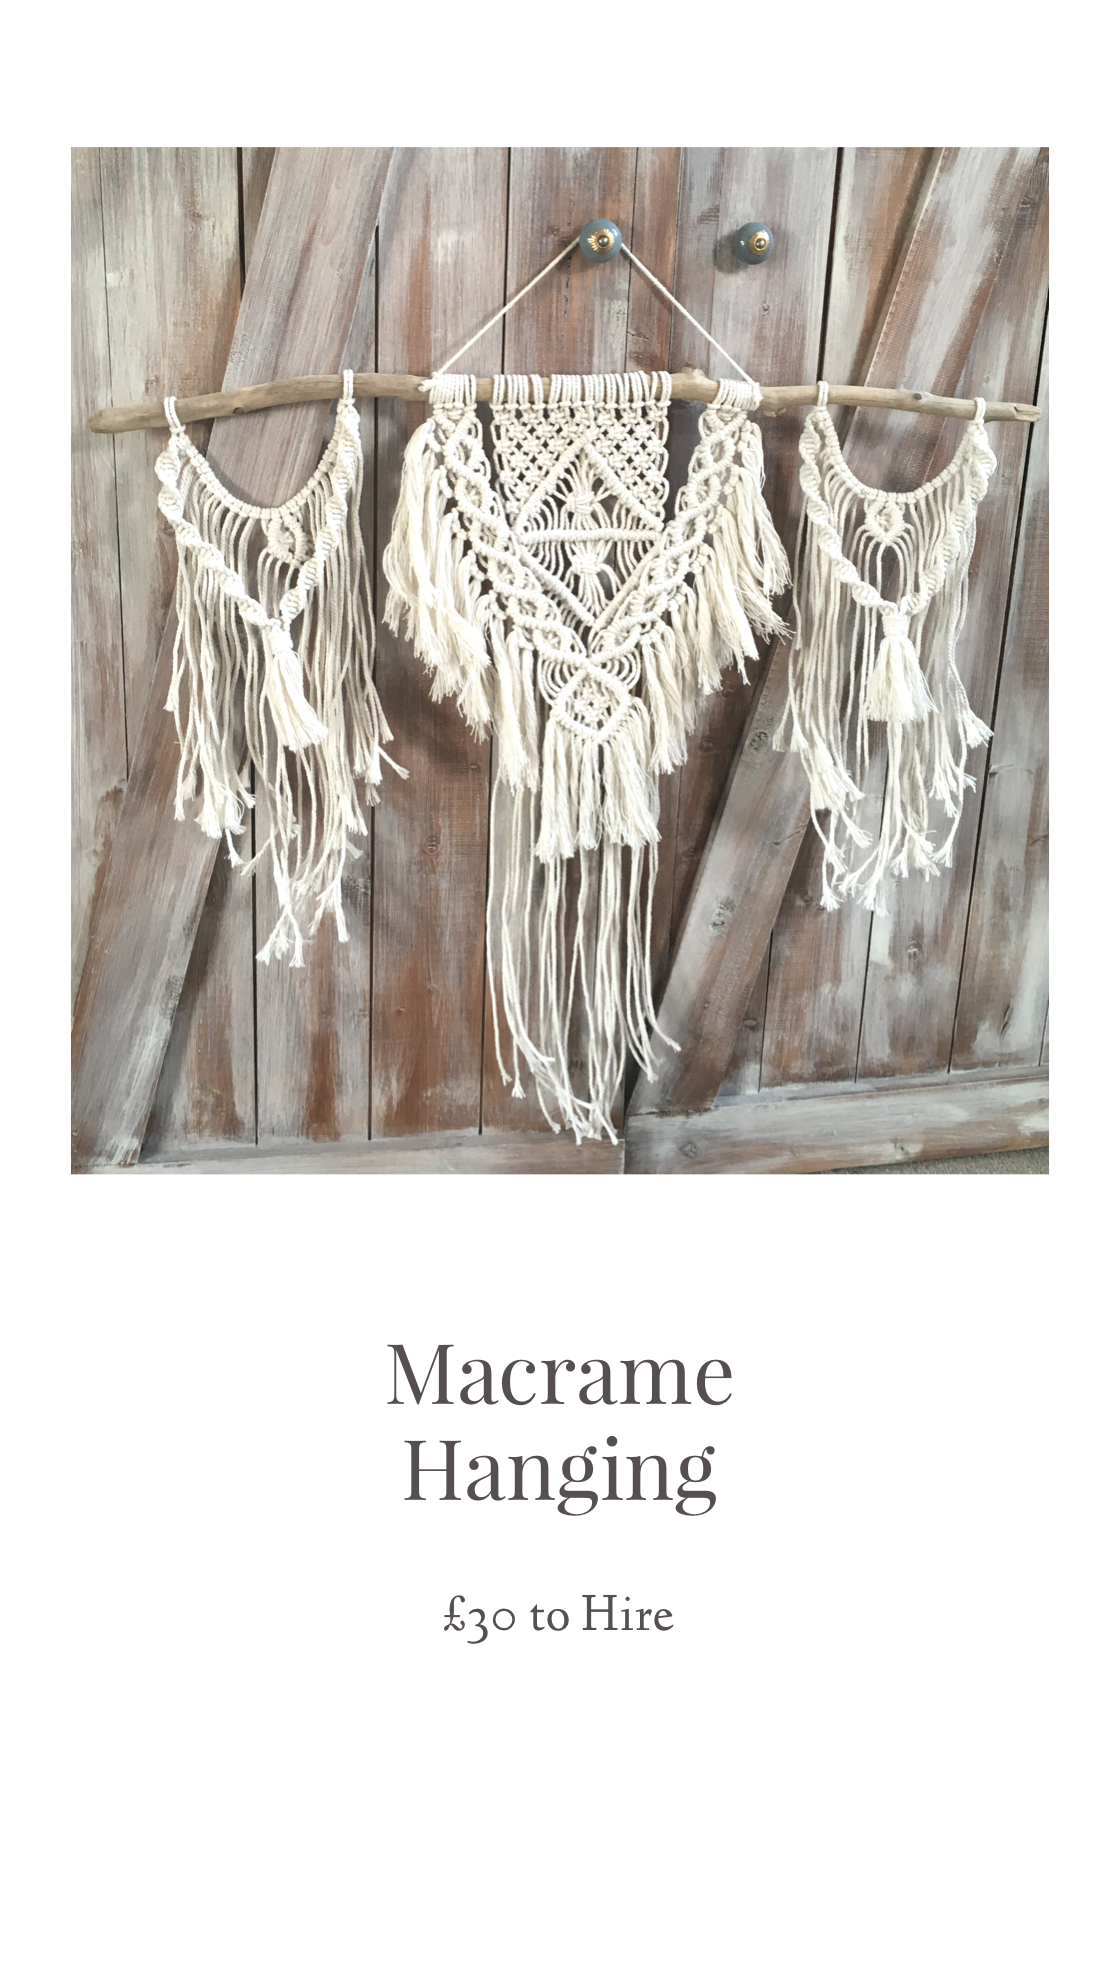 macrame hanging hire derby sass weddings.png